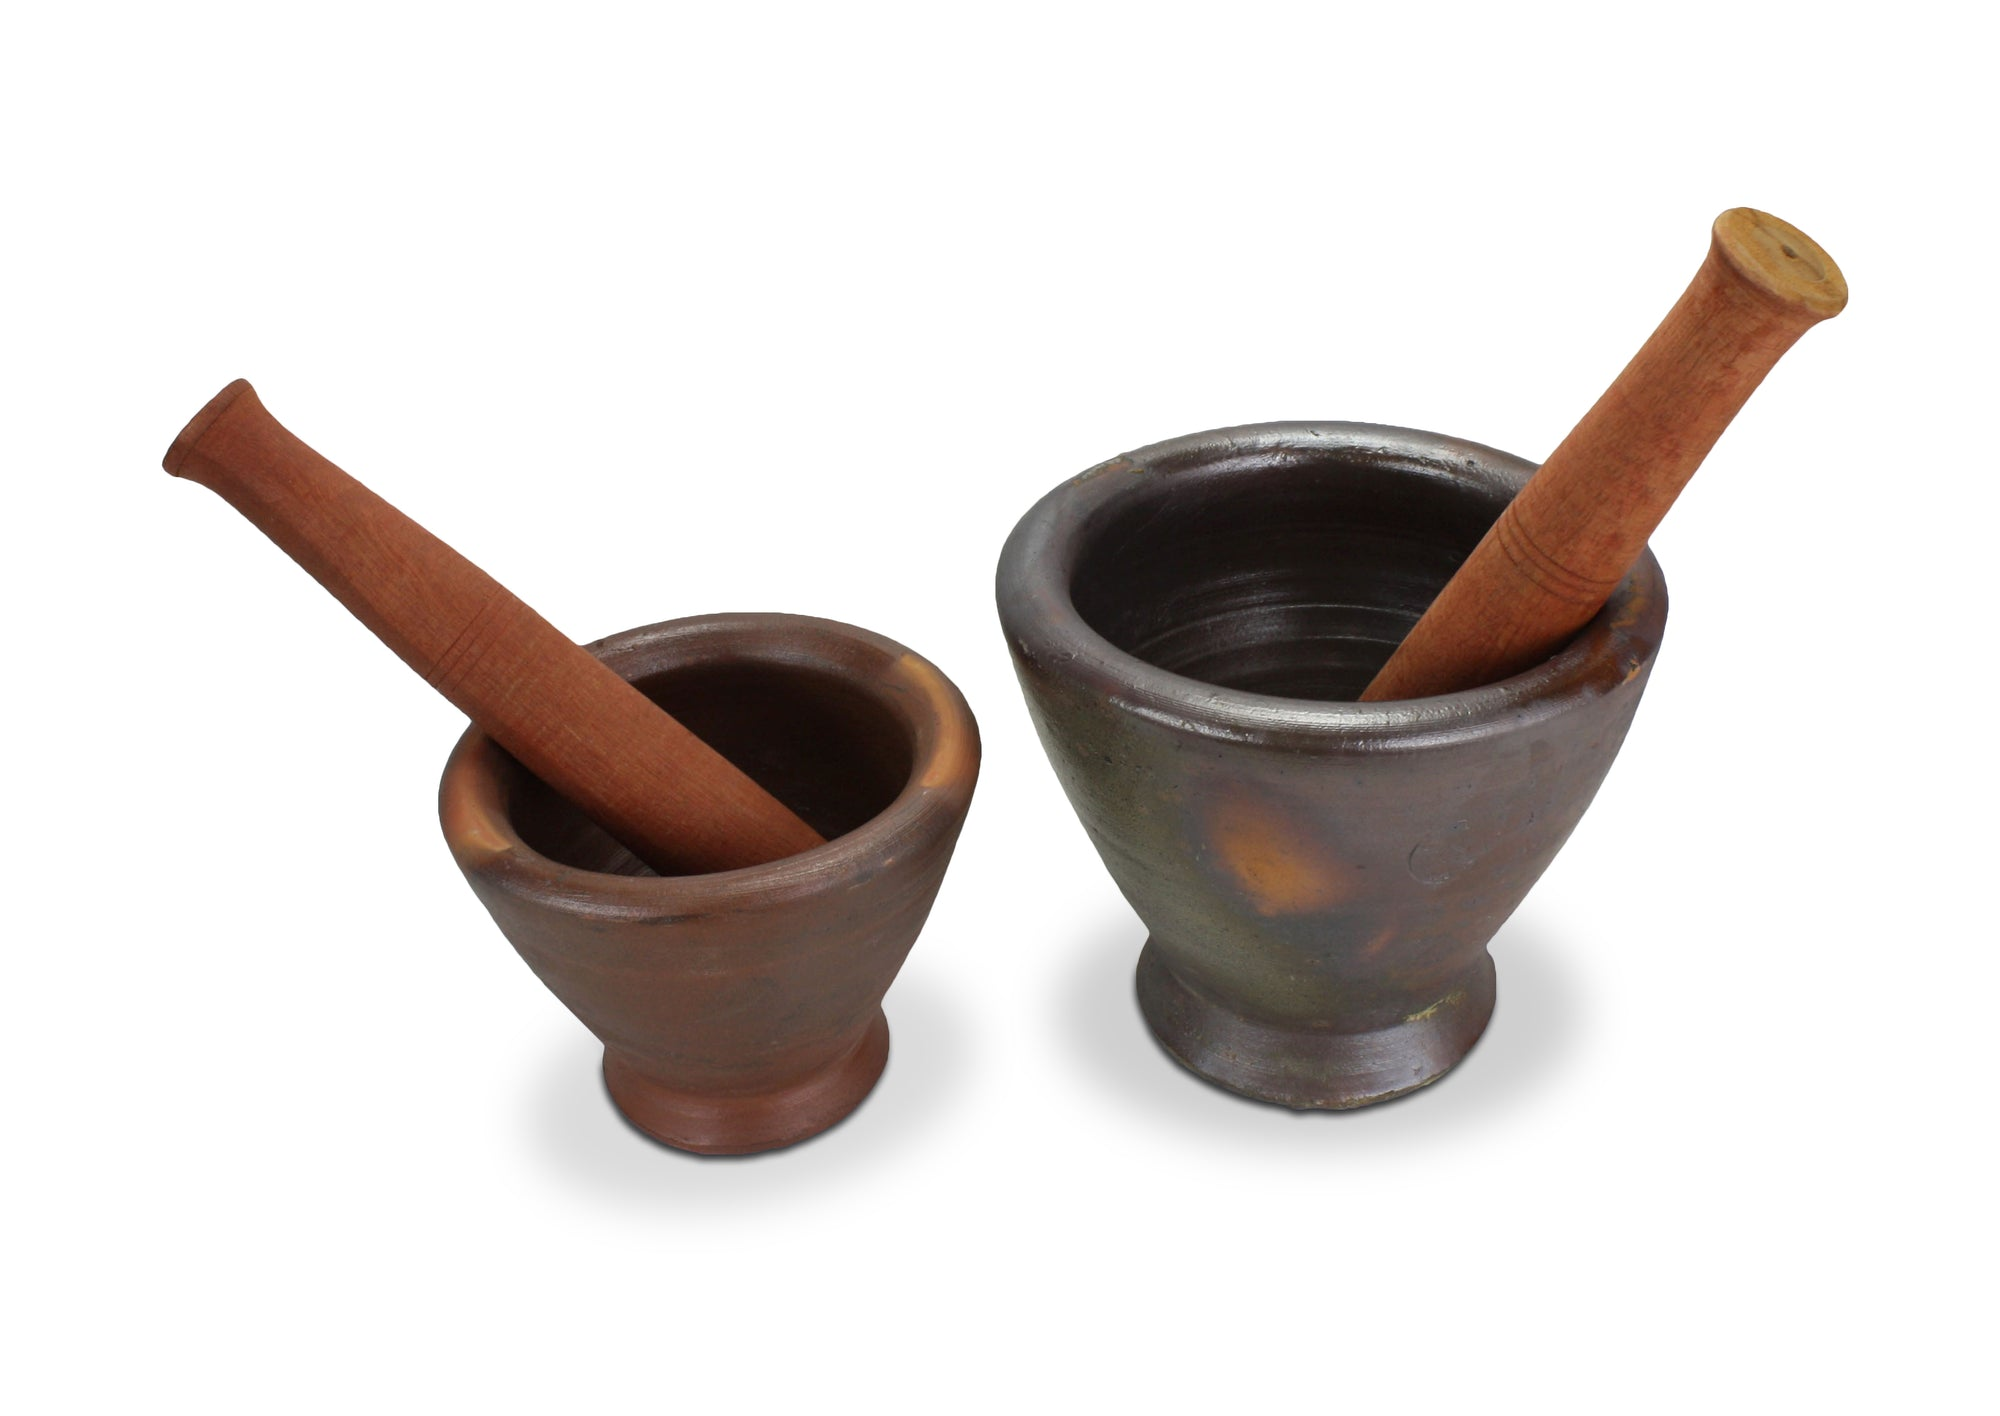 Thai / Laos Earthenware Mortar and Pestle, 2 sizes. Kruk - Clay mortar. - farangshop-co